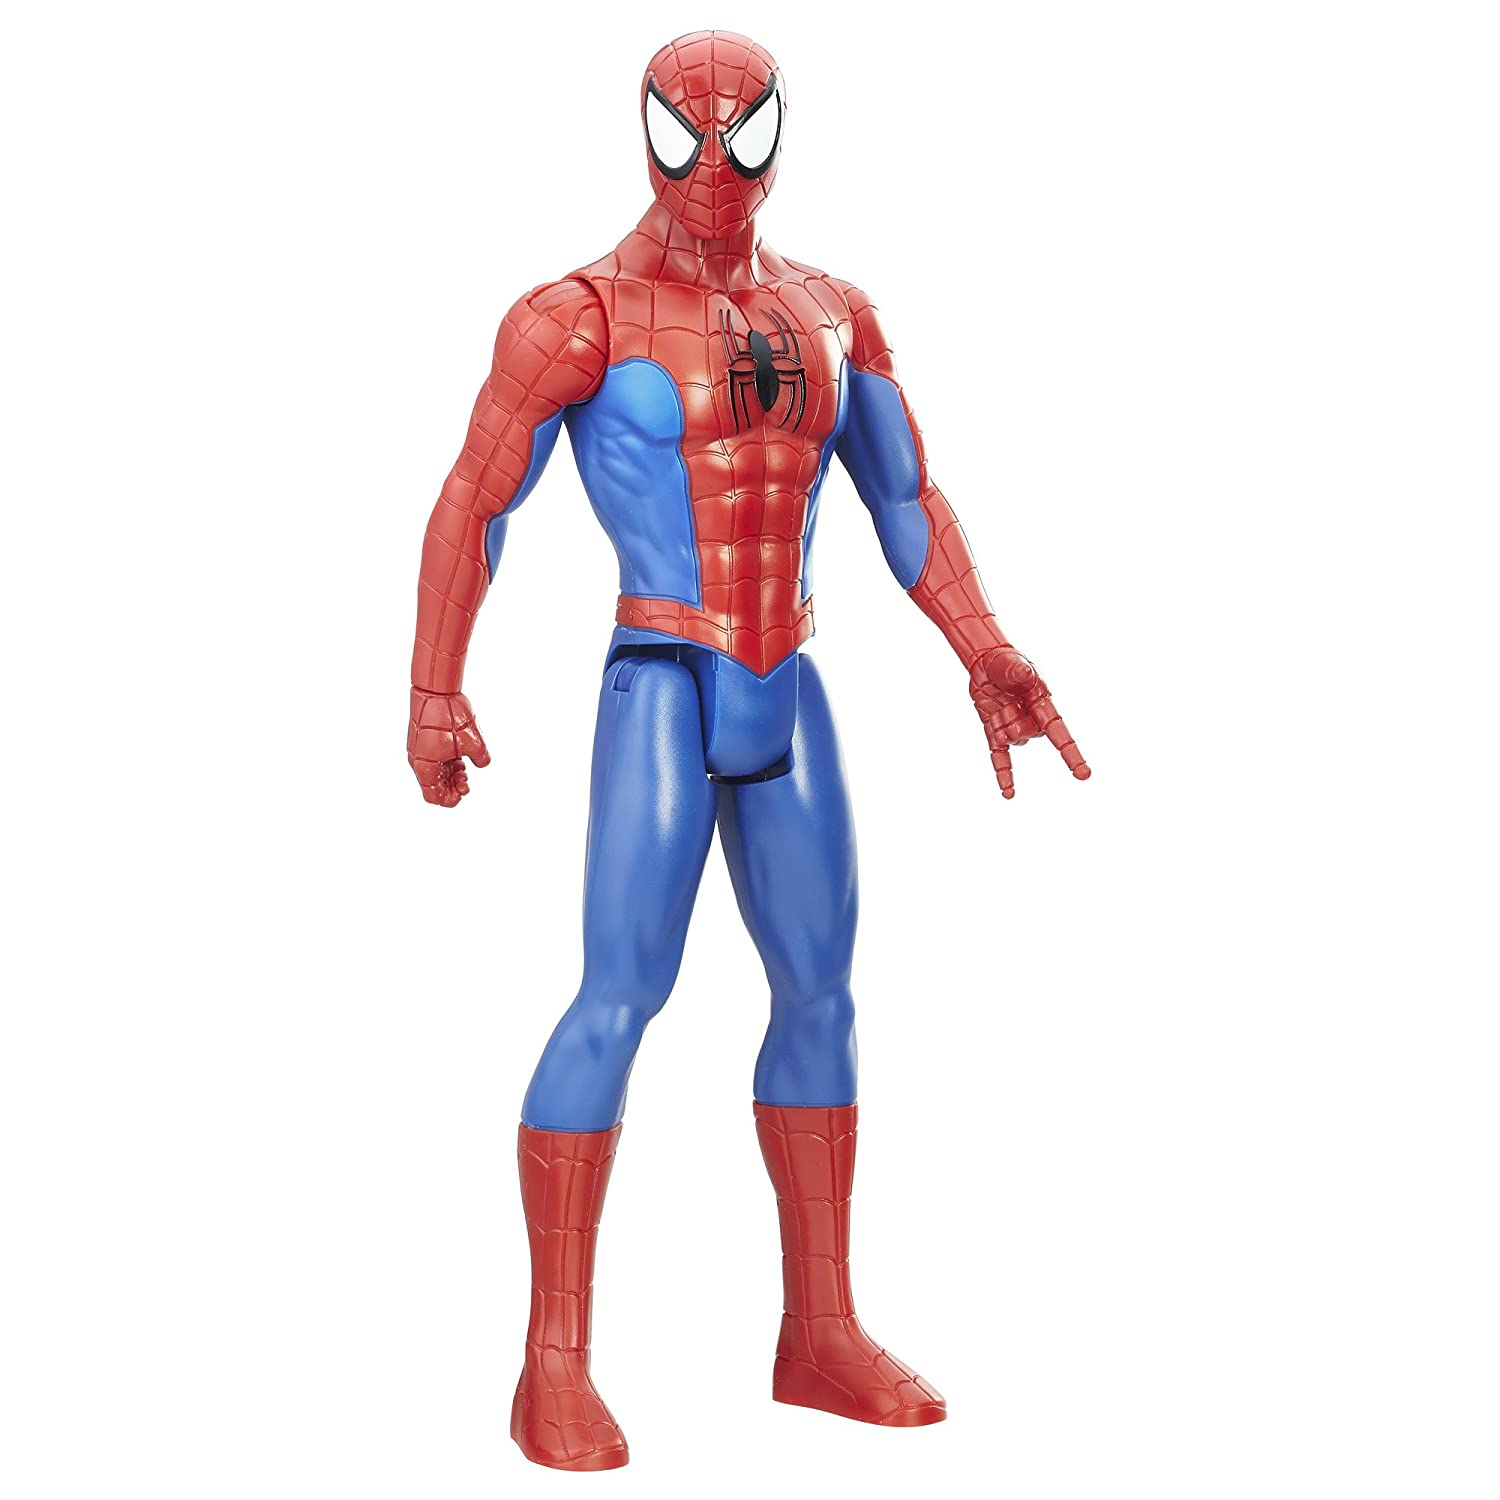 Spider-Man Titan Hero Series Action Figure Hasbro E0649